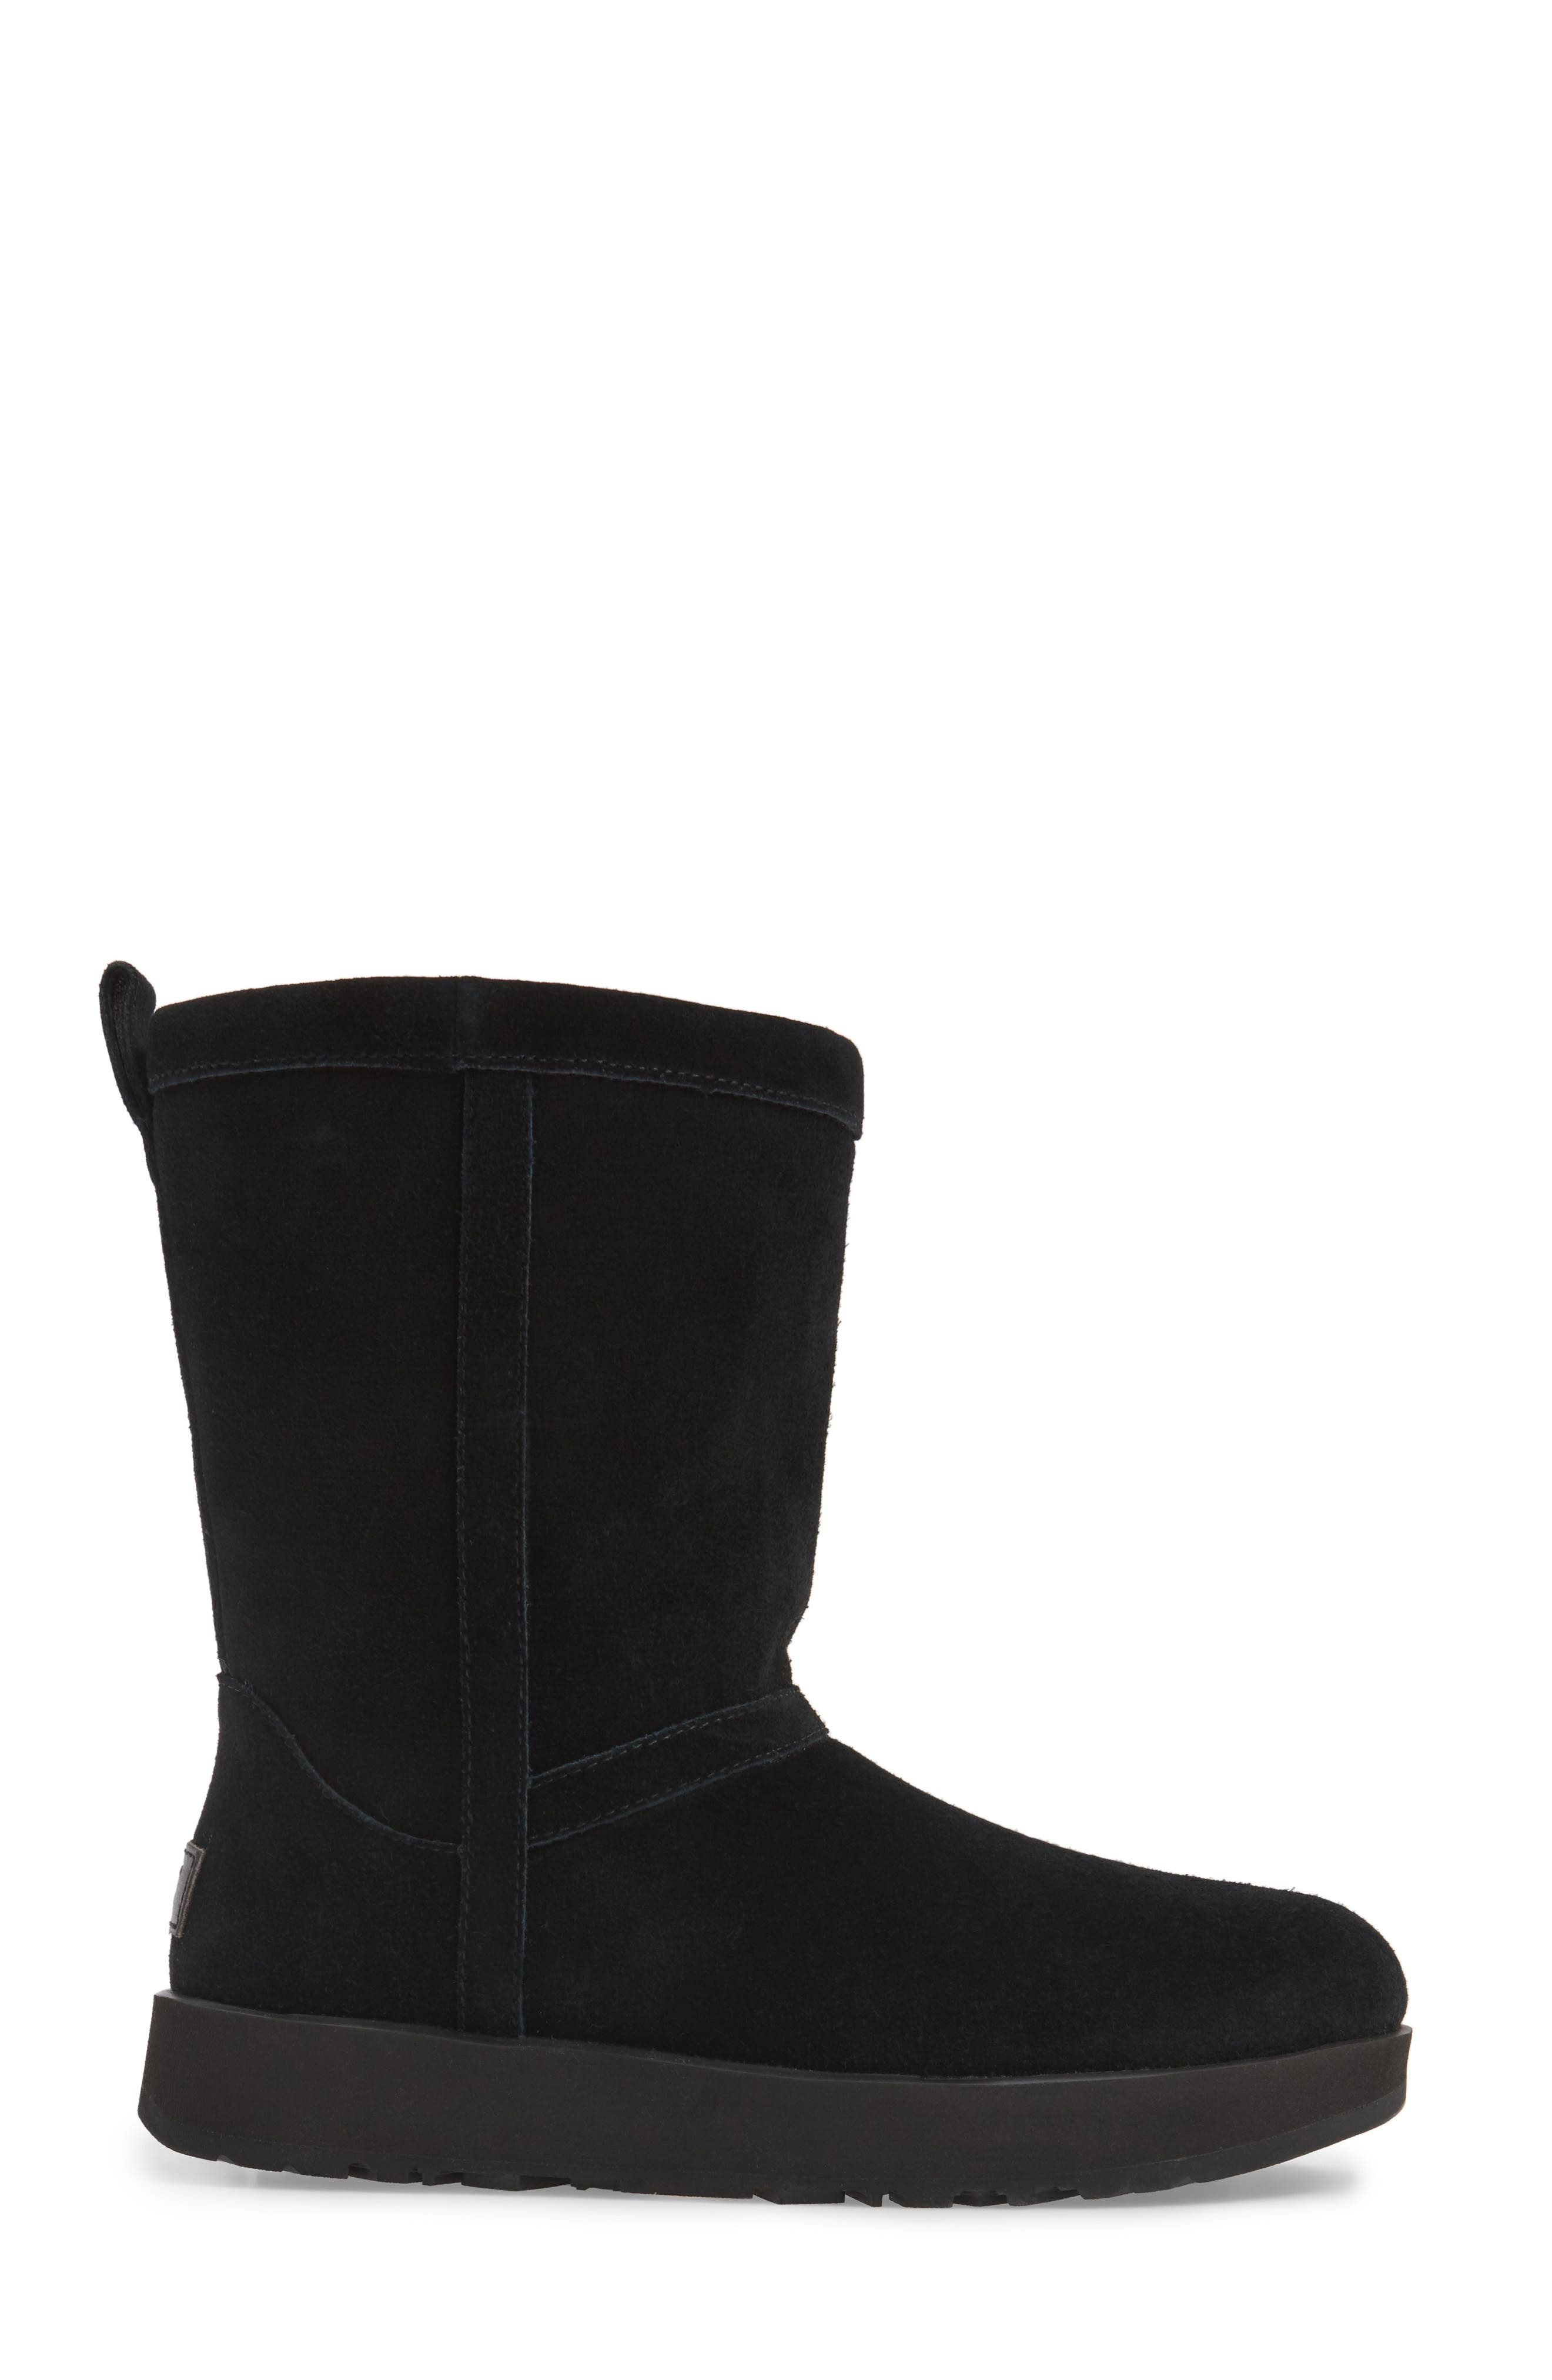 UGG<SUP>®</SUP>, Classic Short Waterproof Boot, Alternate thumbnail 3, color, BLACK SUEDE